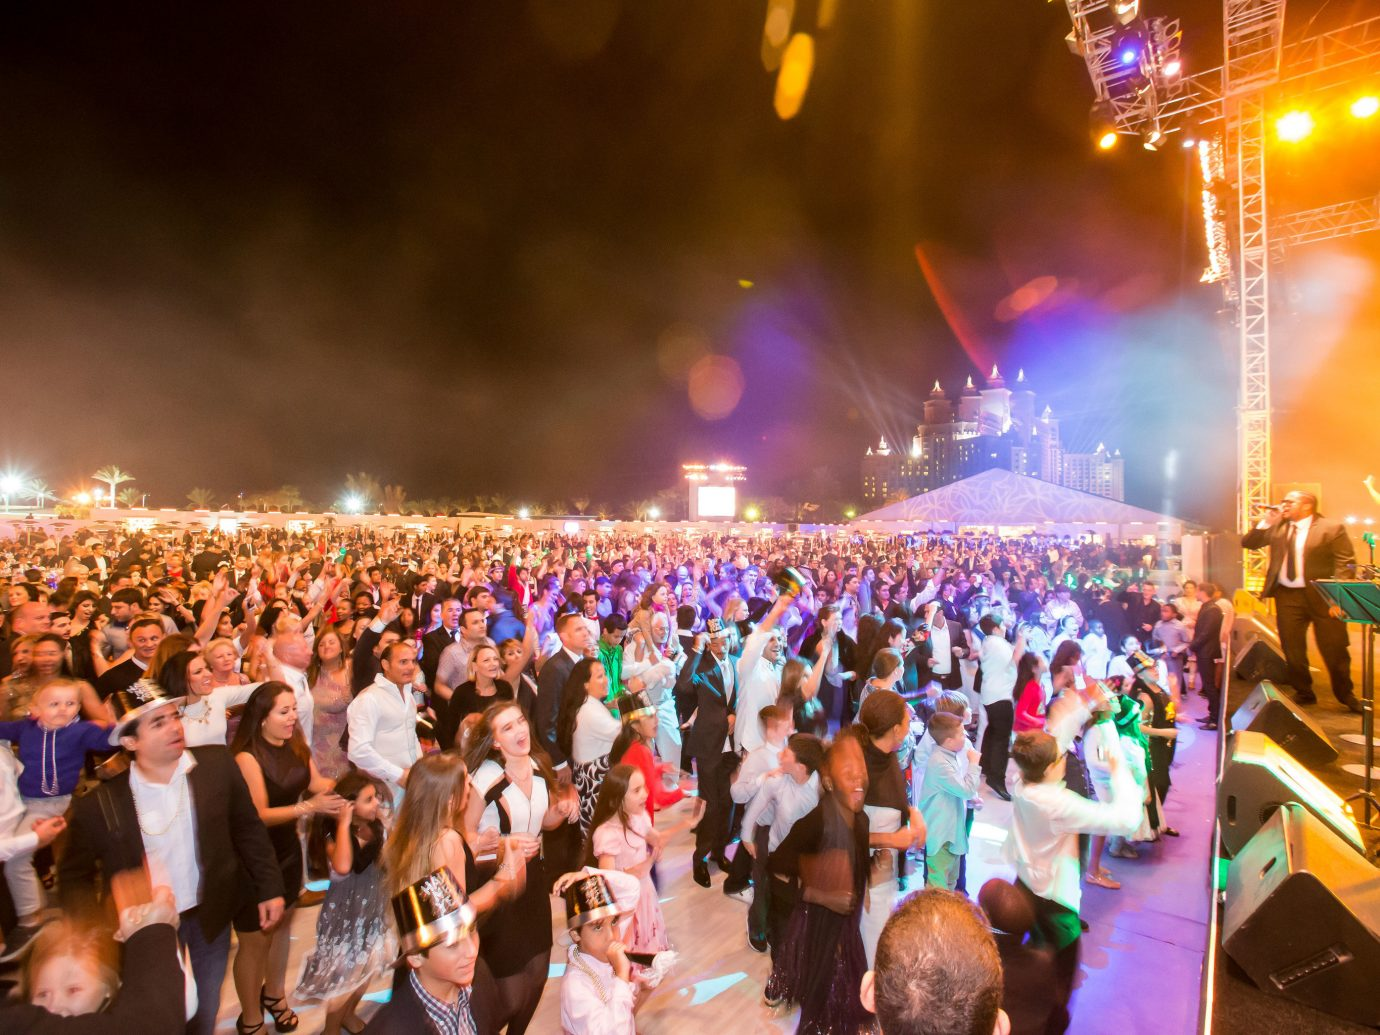 Trip Ideas person crowd outdoor people group audience event Party festival nightclub night